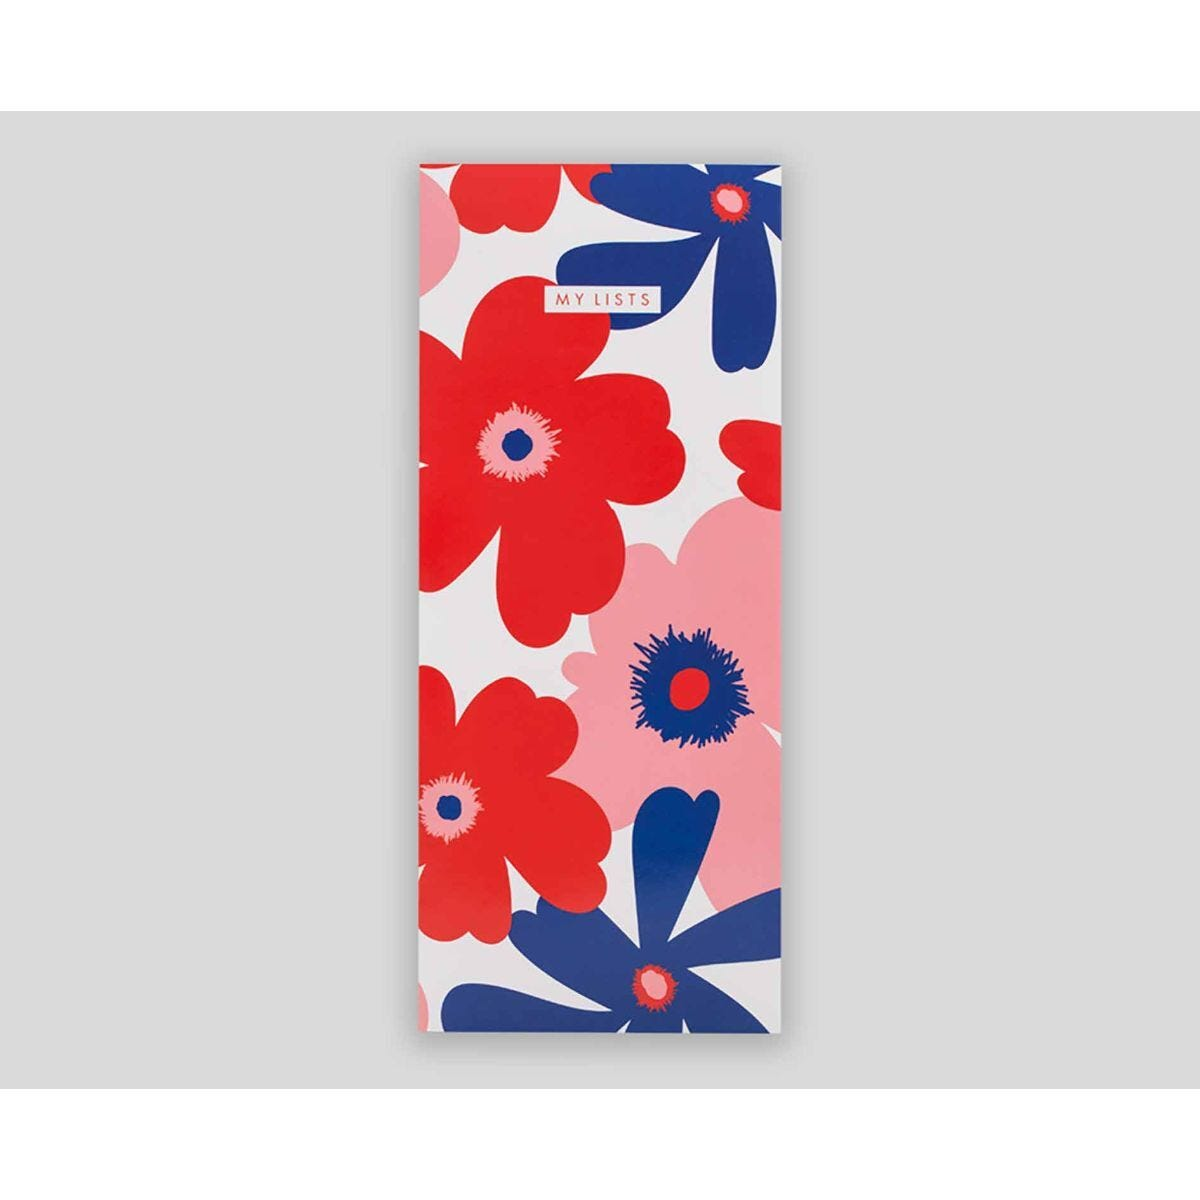 Matilda Myres Floral List Pad Slim Lined 200 Pages Red